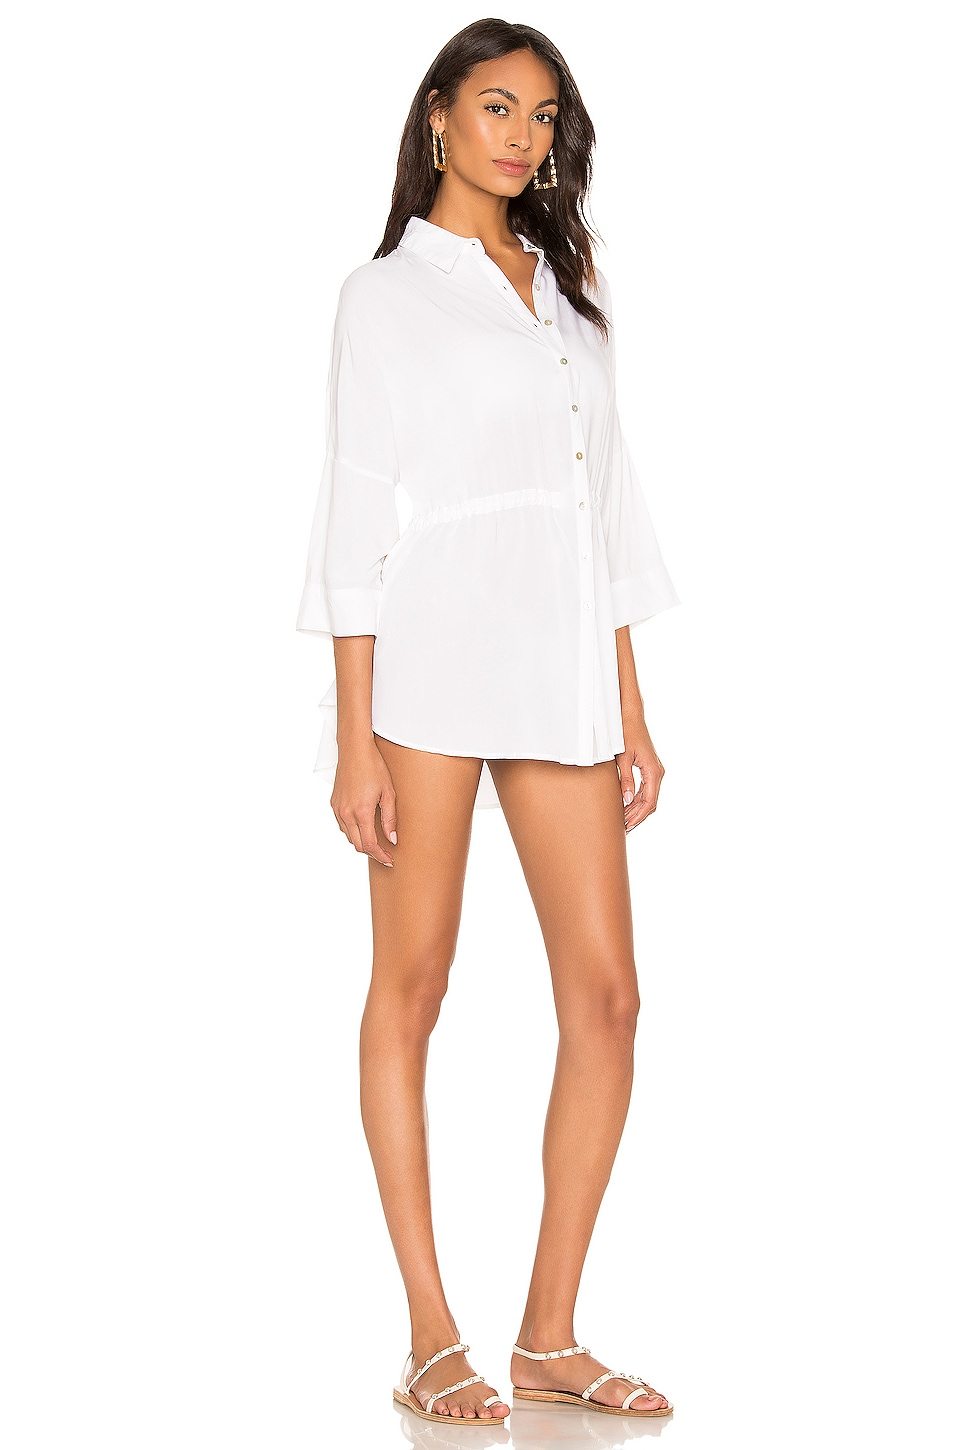 Pacifica Shirt Dress, view 3, click to view large image.